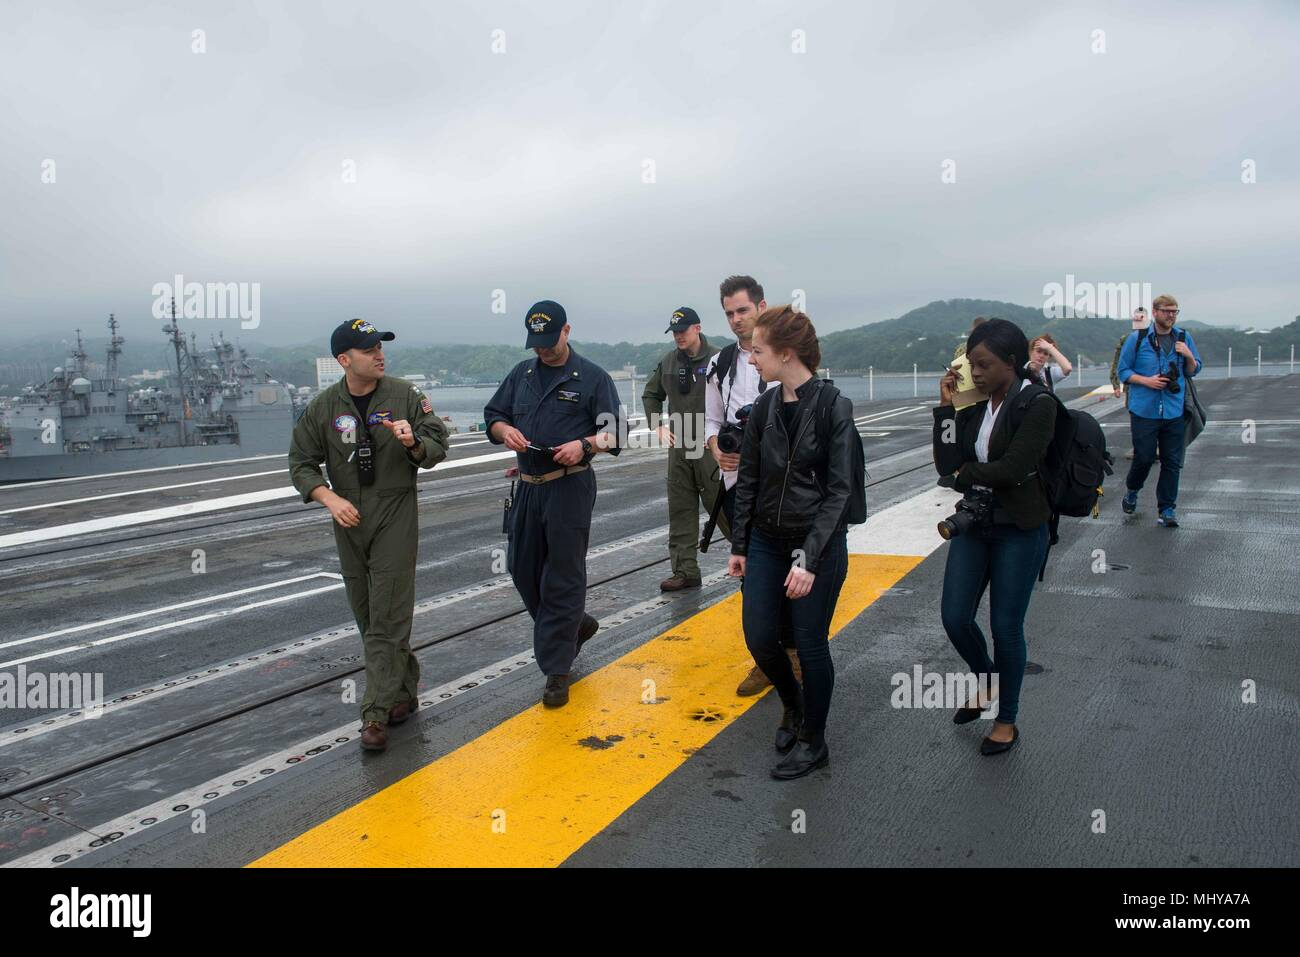 180503-N-CL027-0076 YOKOSUKA, Japan (May 3, 2018) Sailors aboard the Navy's forward-deployed aircraft carrier, USS Ronald Reagan (CVN 76), explains flight deck operations to Northwestern University media students during a ship tour, May 3, 2018. During the tour, the students visited various locations throughout the ship including the flight deck, hangar bay and bridge. Ronald Reagan, the flagship of Carrier Strike Group 5, provides a combat-ready force that protects and defends the collective maritime interests of its allies and partners in the Indo-Pacific region. (U.S. Navy photo by Mass Com - Stock Image